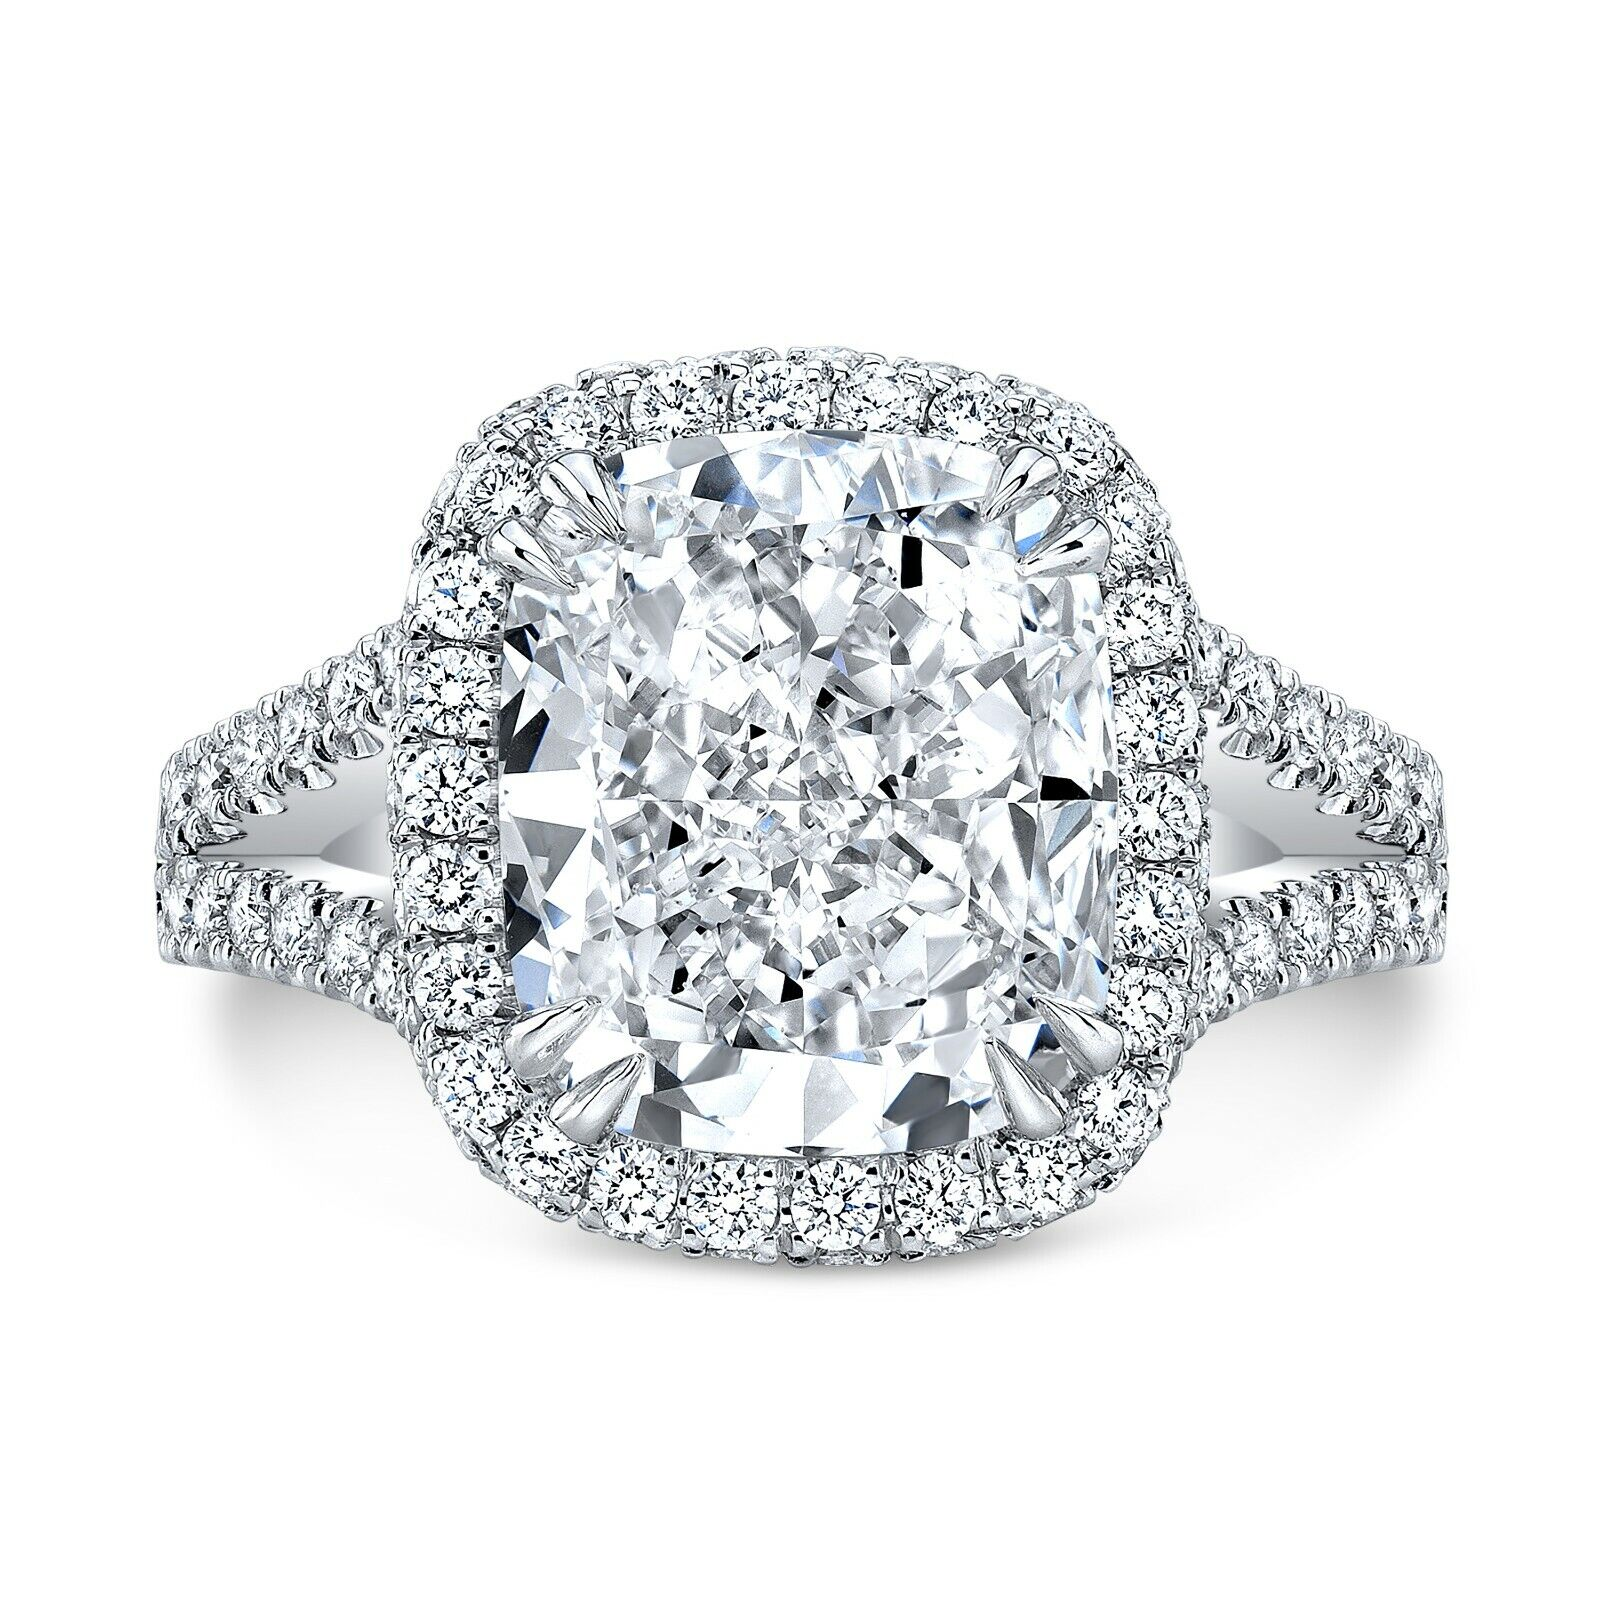 New 4.10 Ct Cushion Cut Halo Round Cut Diamond Engagement Ring GIA J,VS2 Plat